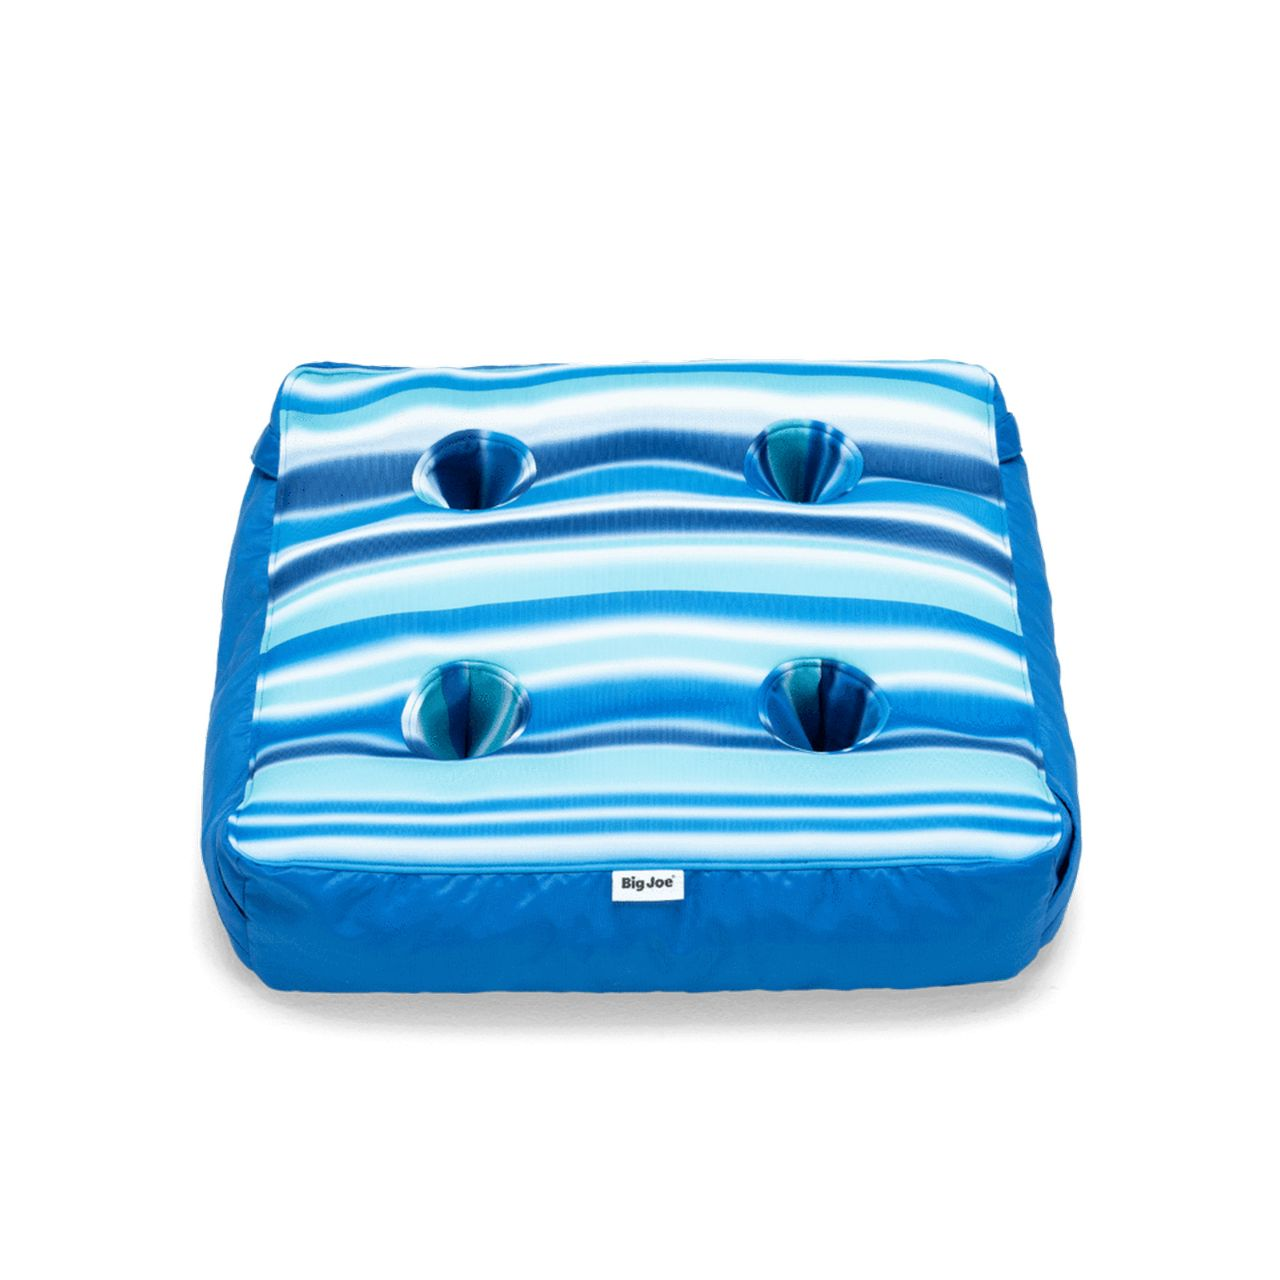 Big Joe Captain's Caddie Pool Float - Blurred Blue